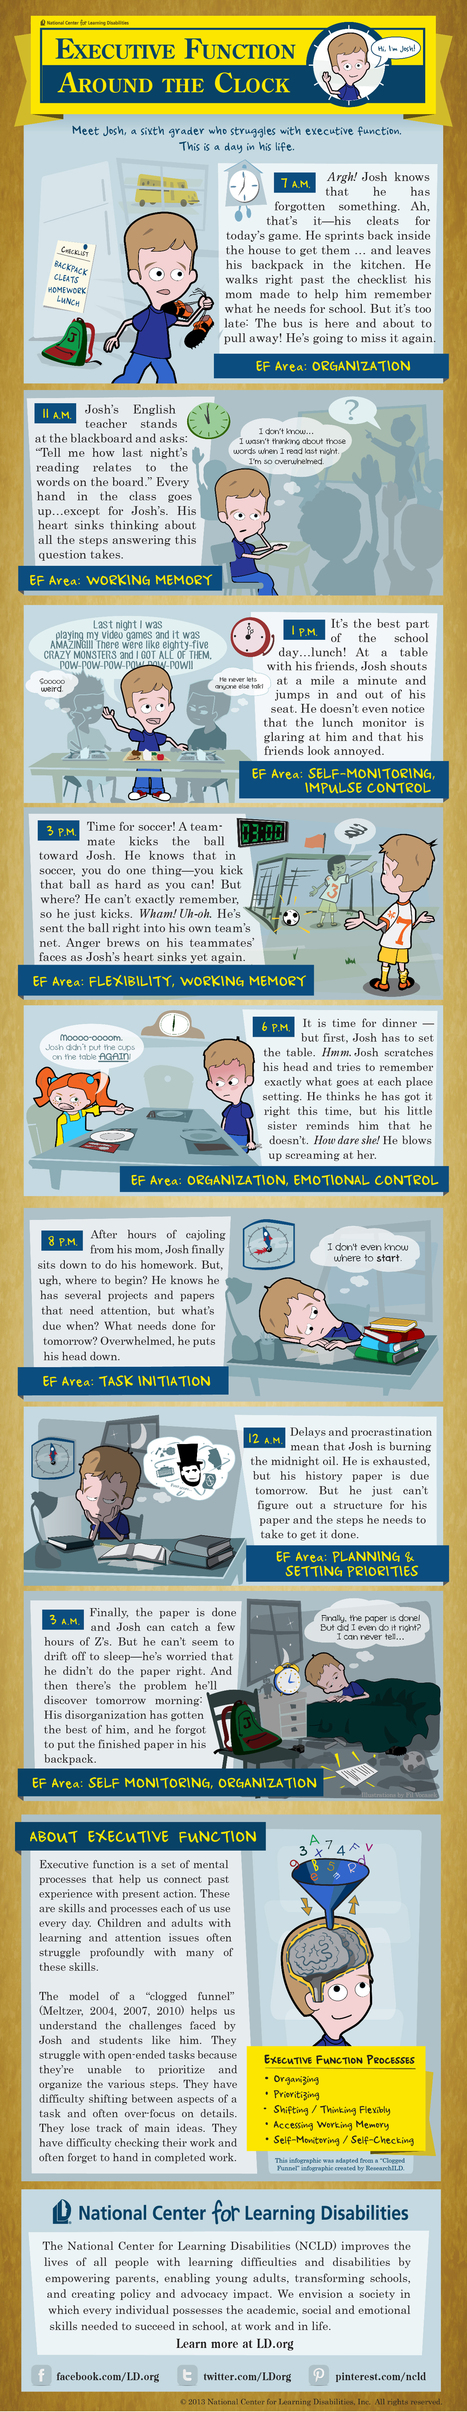 executive-function-Infographic | Executive Function and technology | Scoop.it